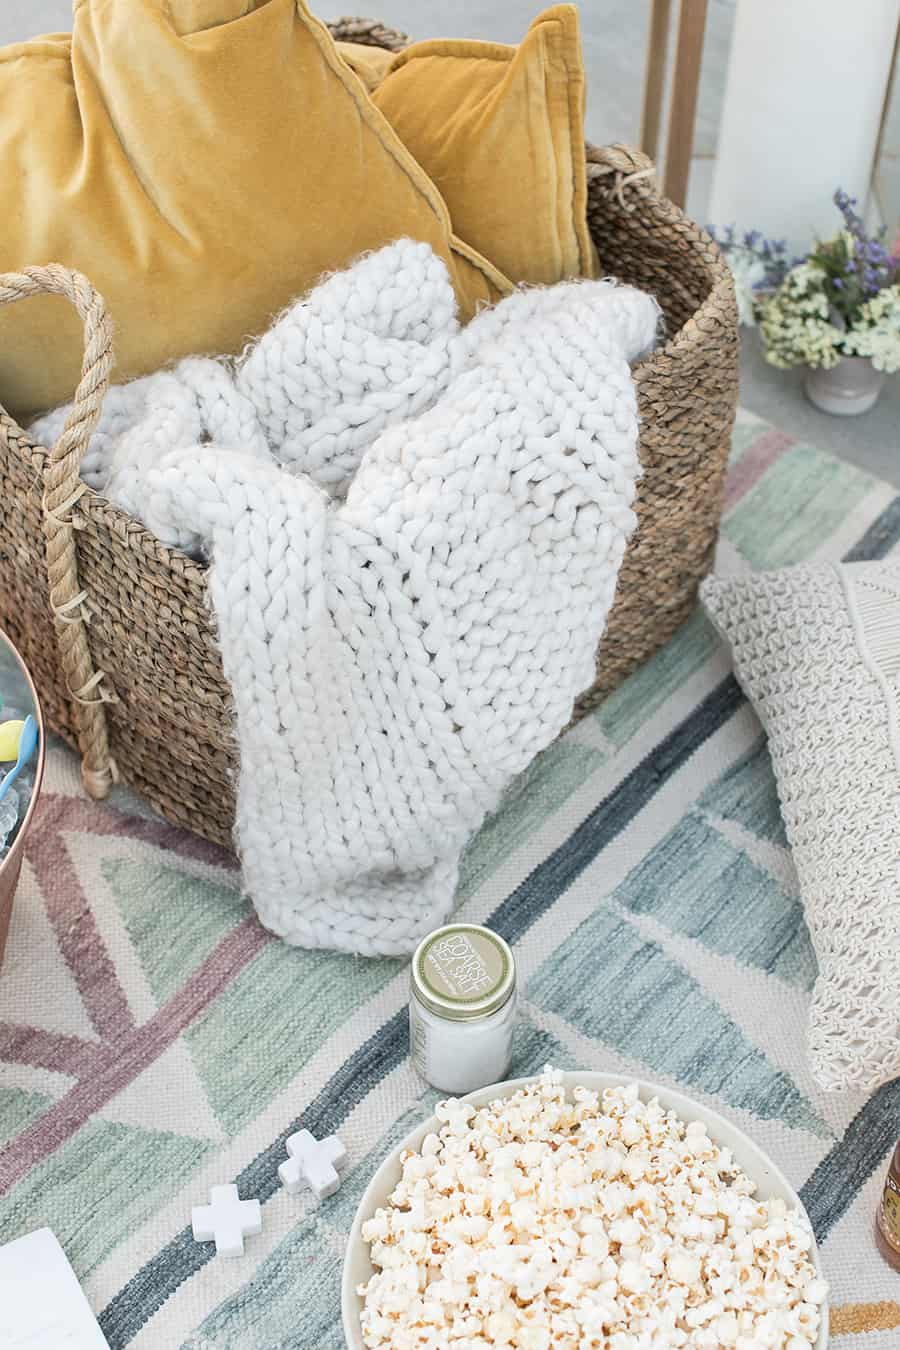 Basket with knitted blanket, bowl of popcorn on a modern blue rug.